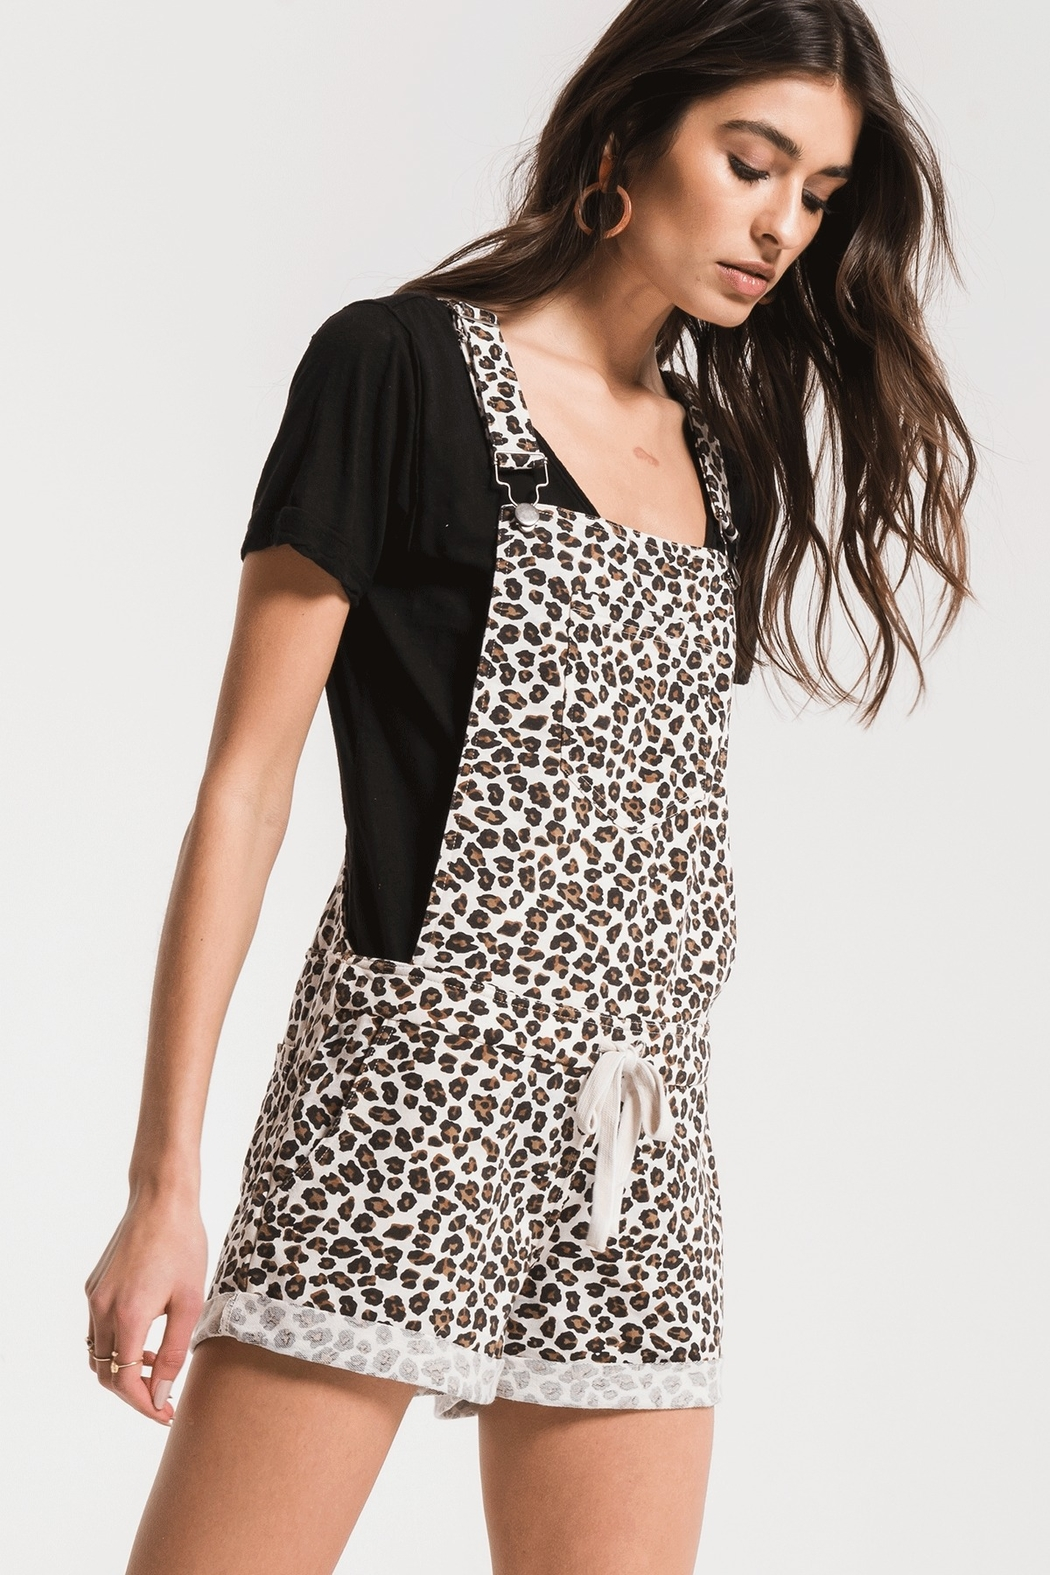 z supply Leopard Short Overall - Front Full Image